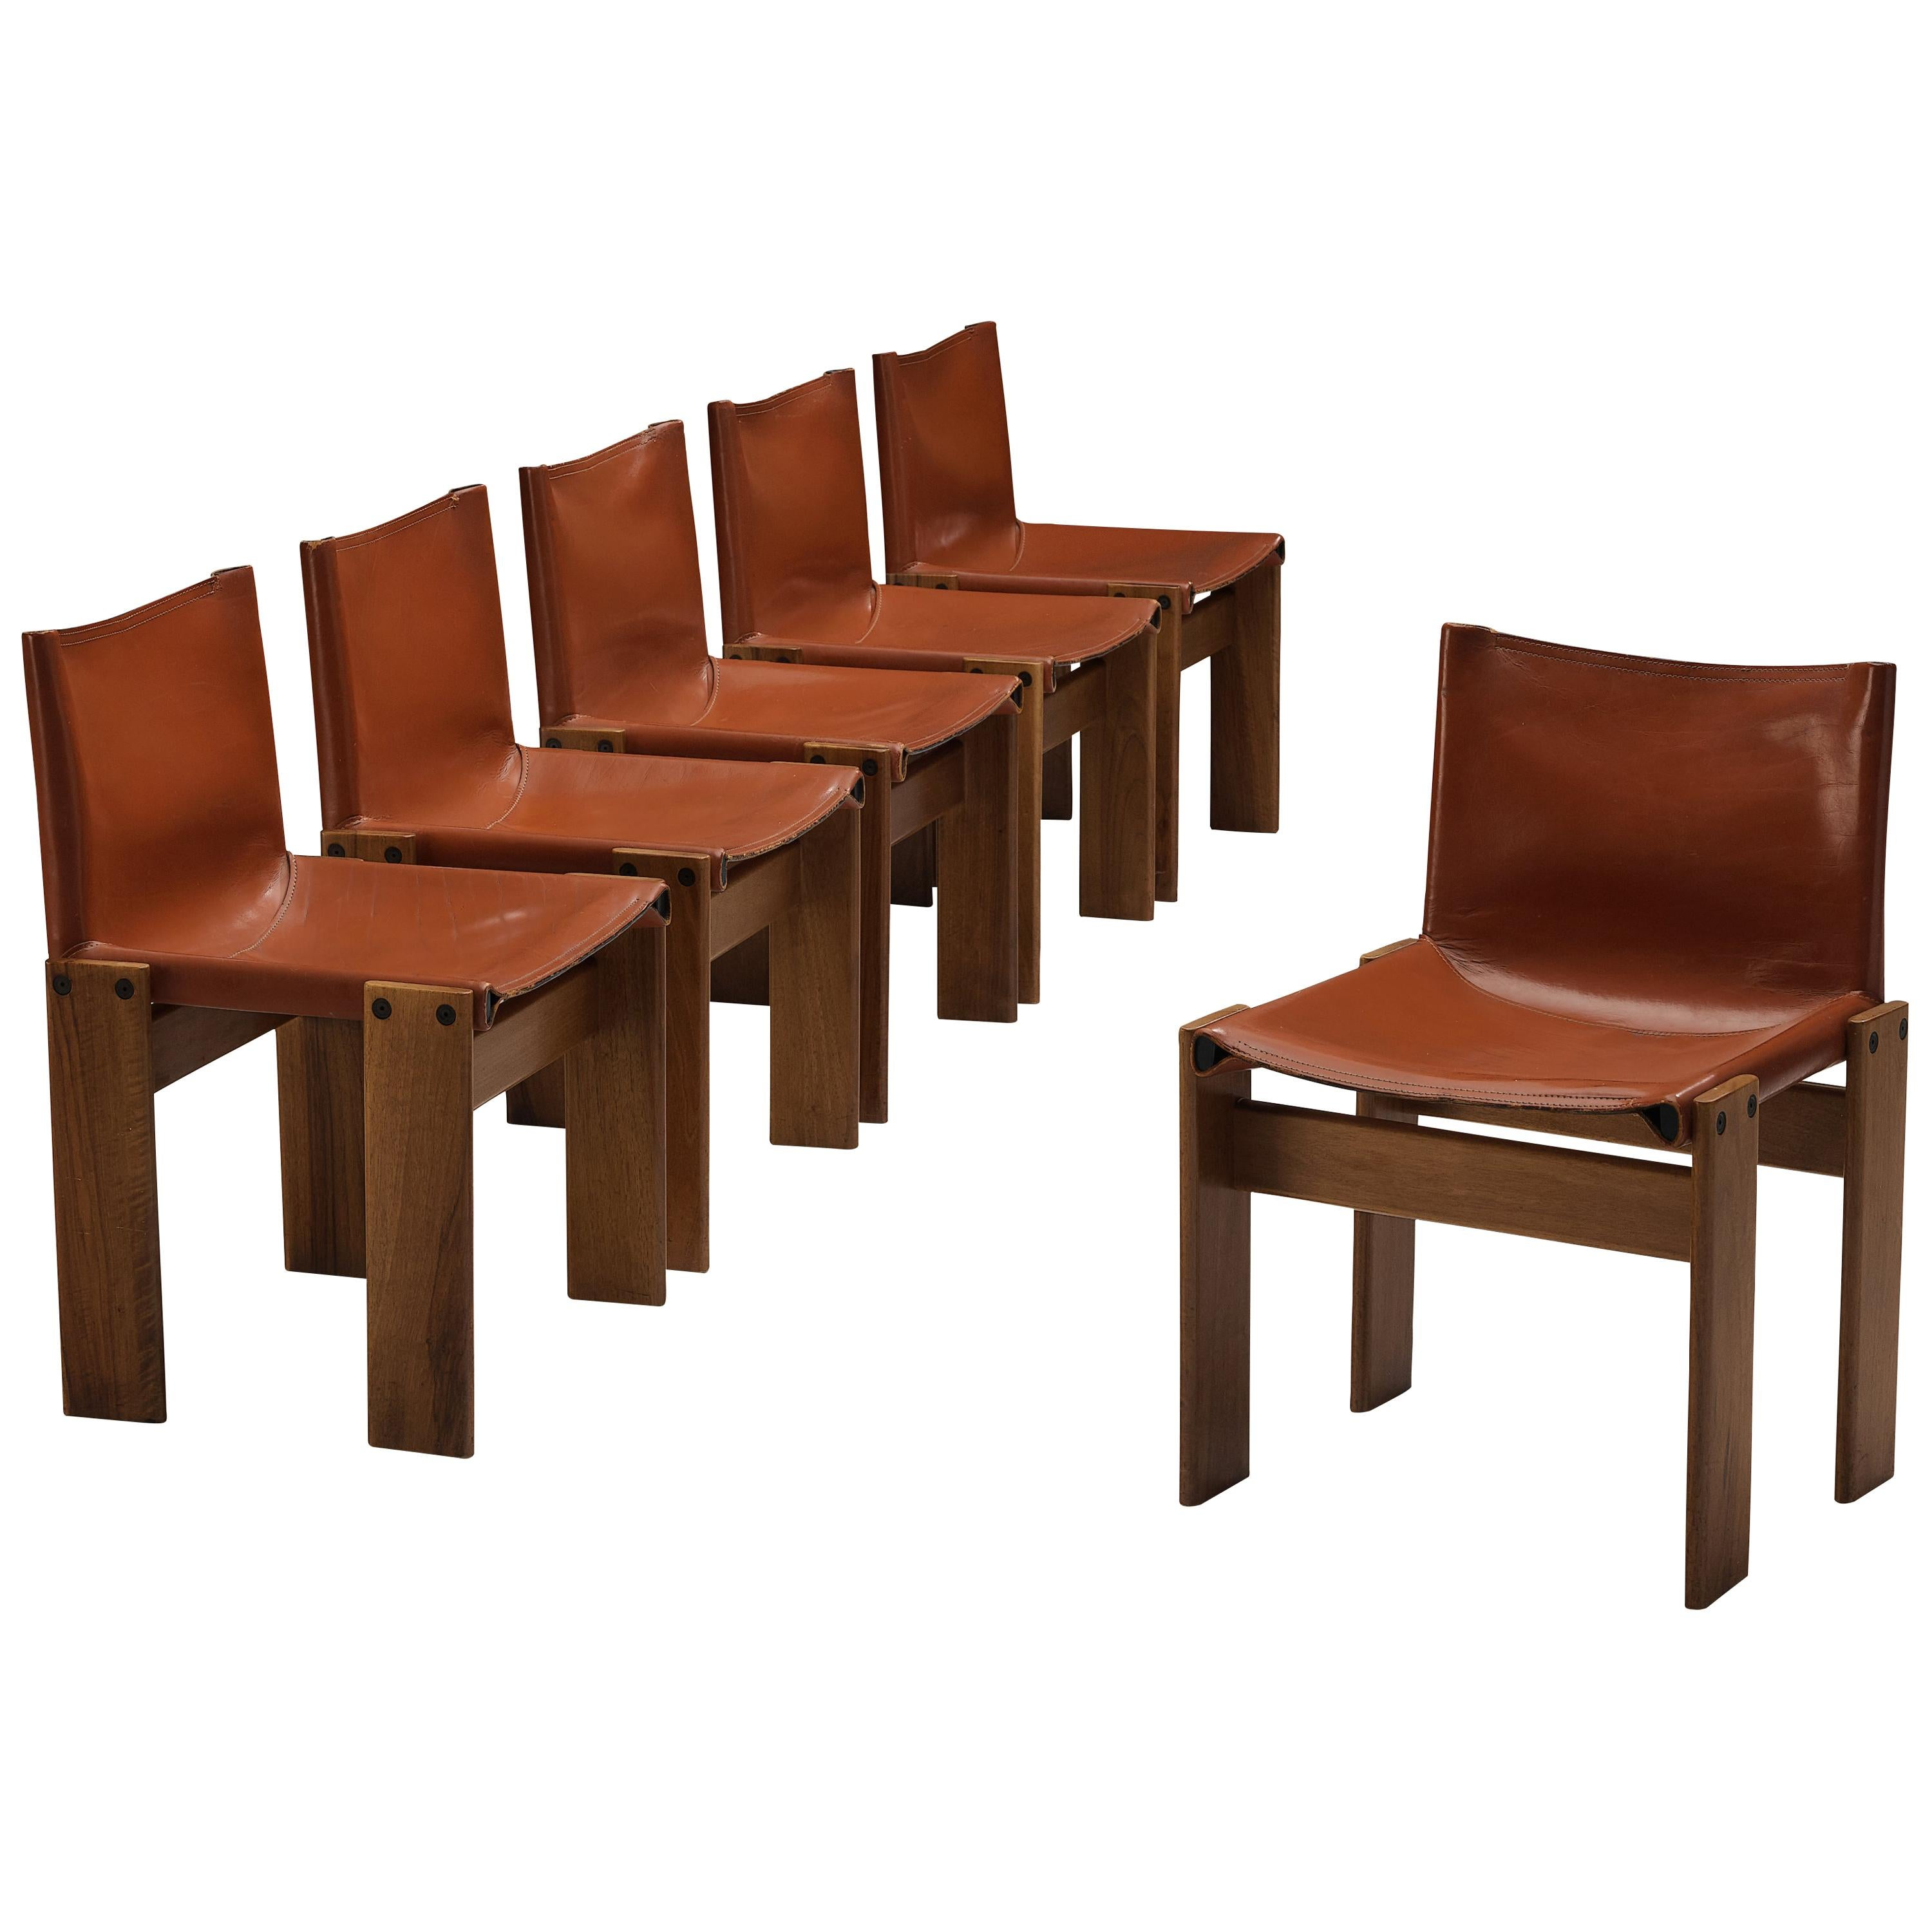 Tobia & Afra Scarpa for Molteni Six 'Monk' Chairs in Red Leather